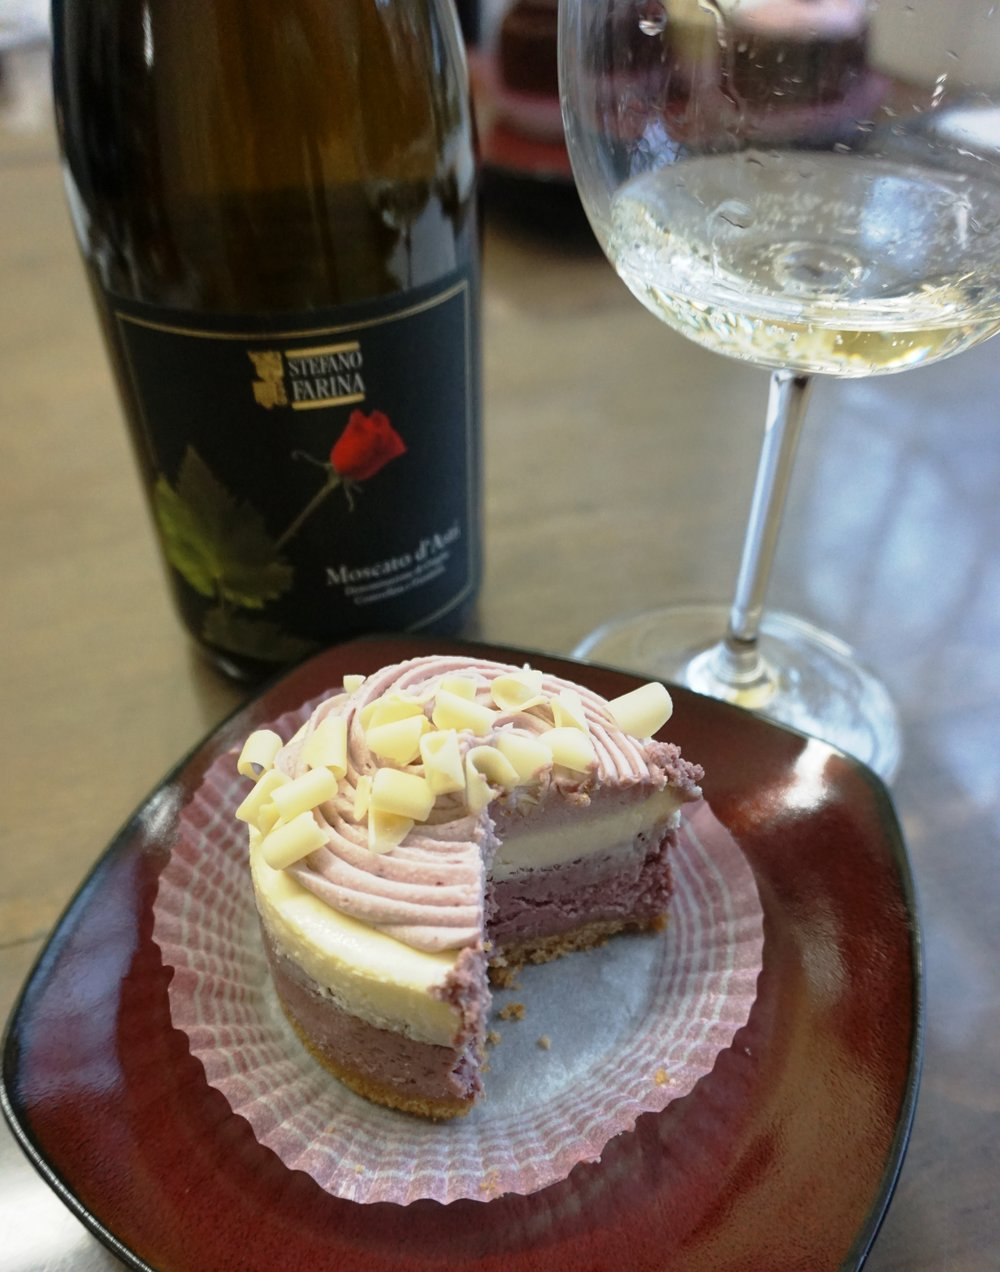 This Marionberry Cheesecake and Moscato di'Asti just might be the Valentine's Day homerun. Dan Eierdam